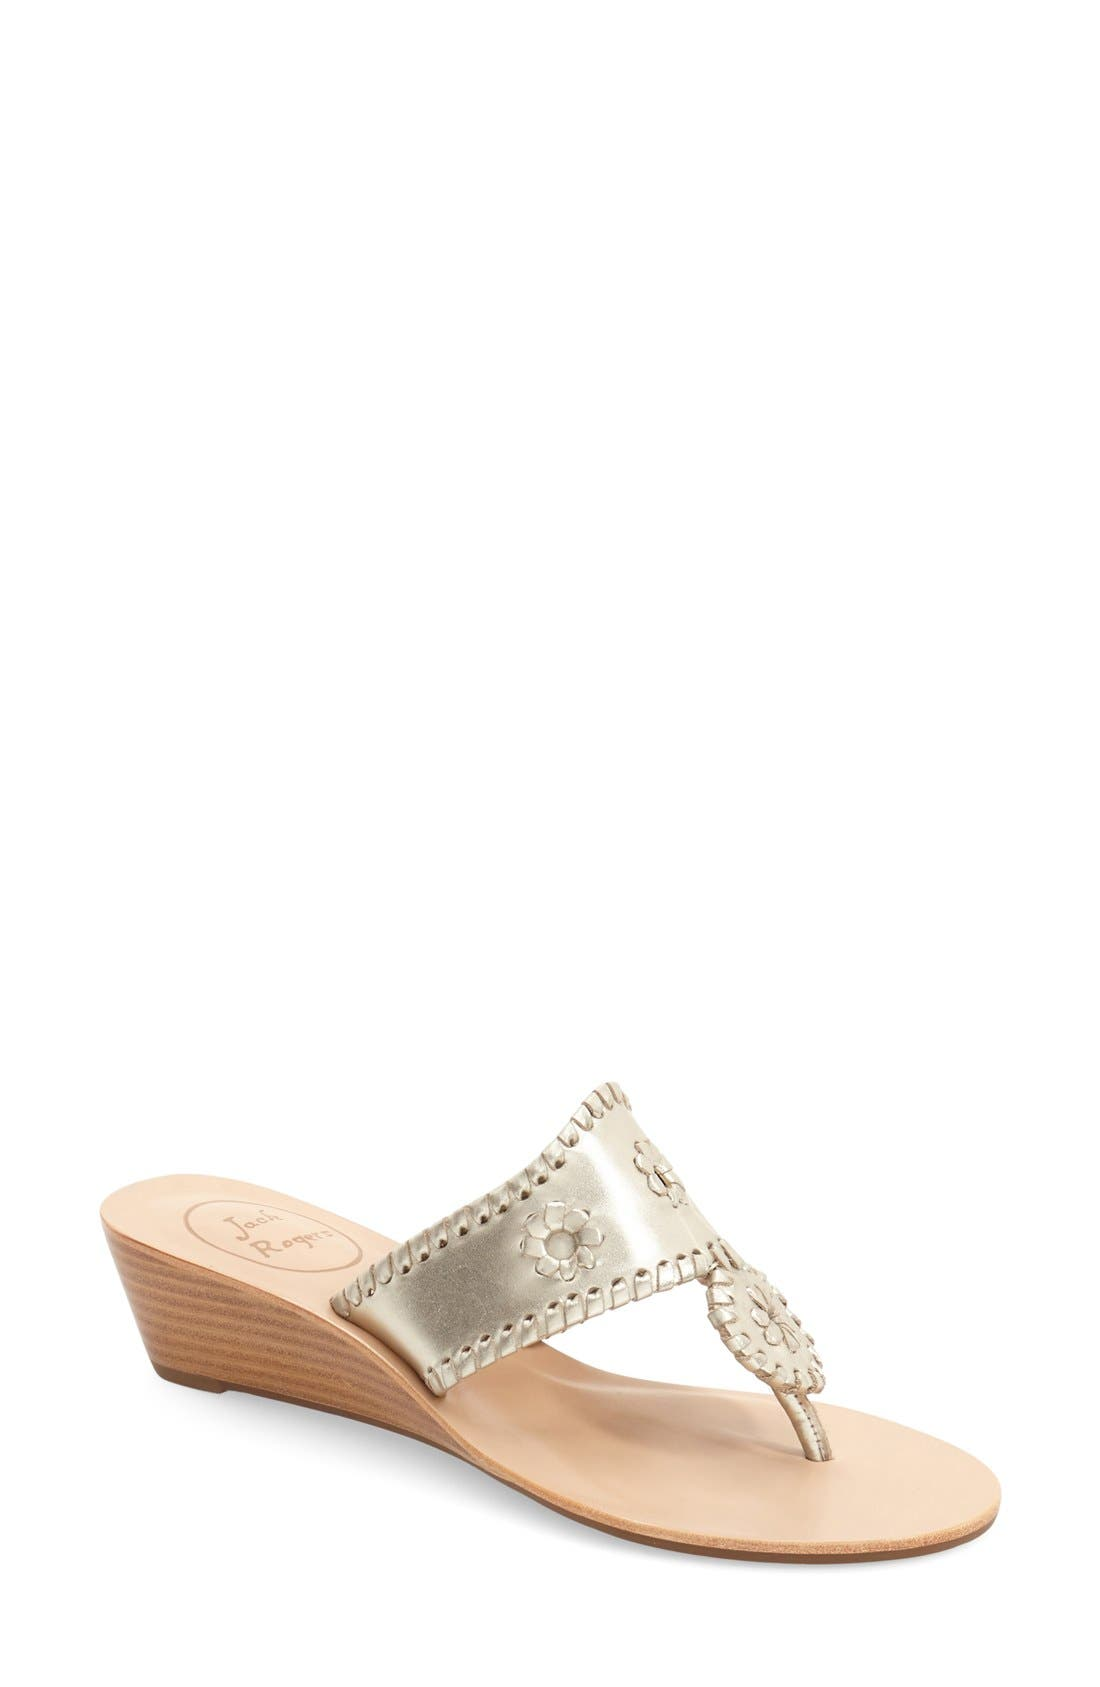 JACK ROGERS Jacks Wedge Sandal